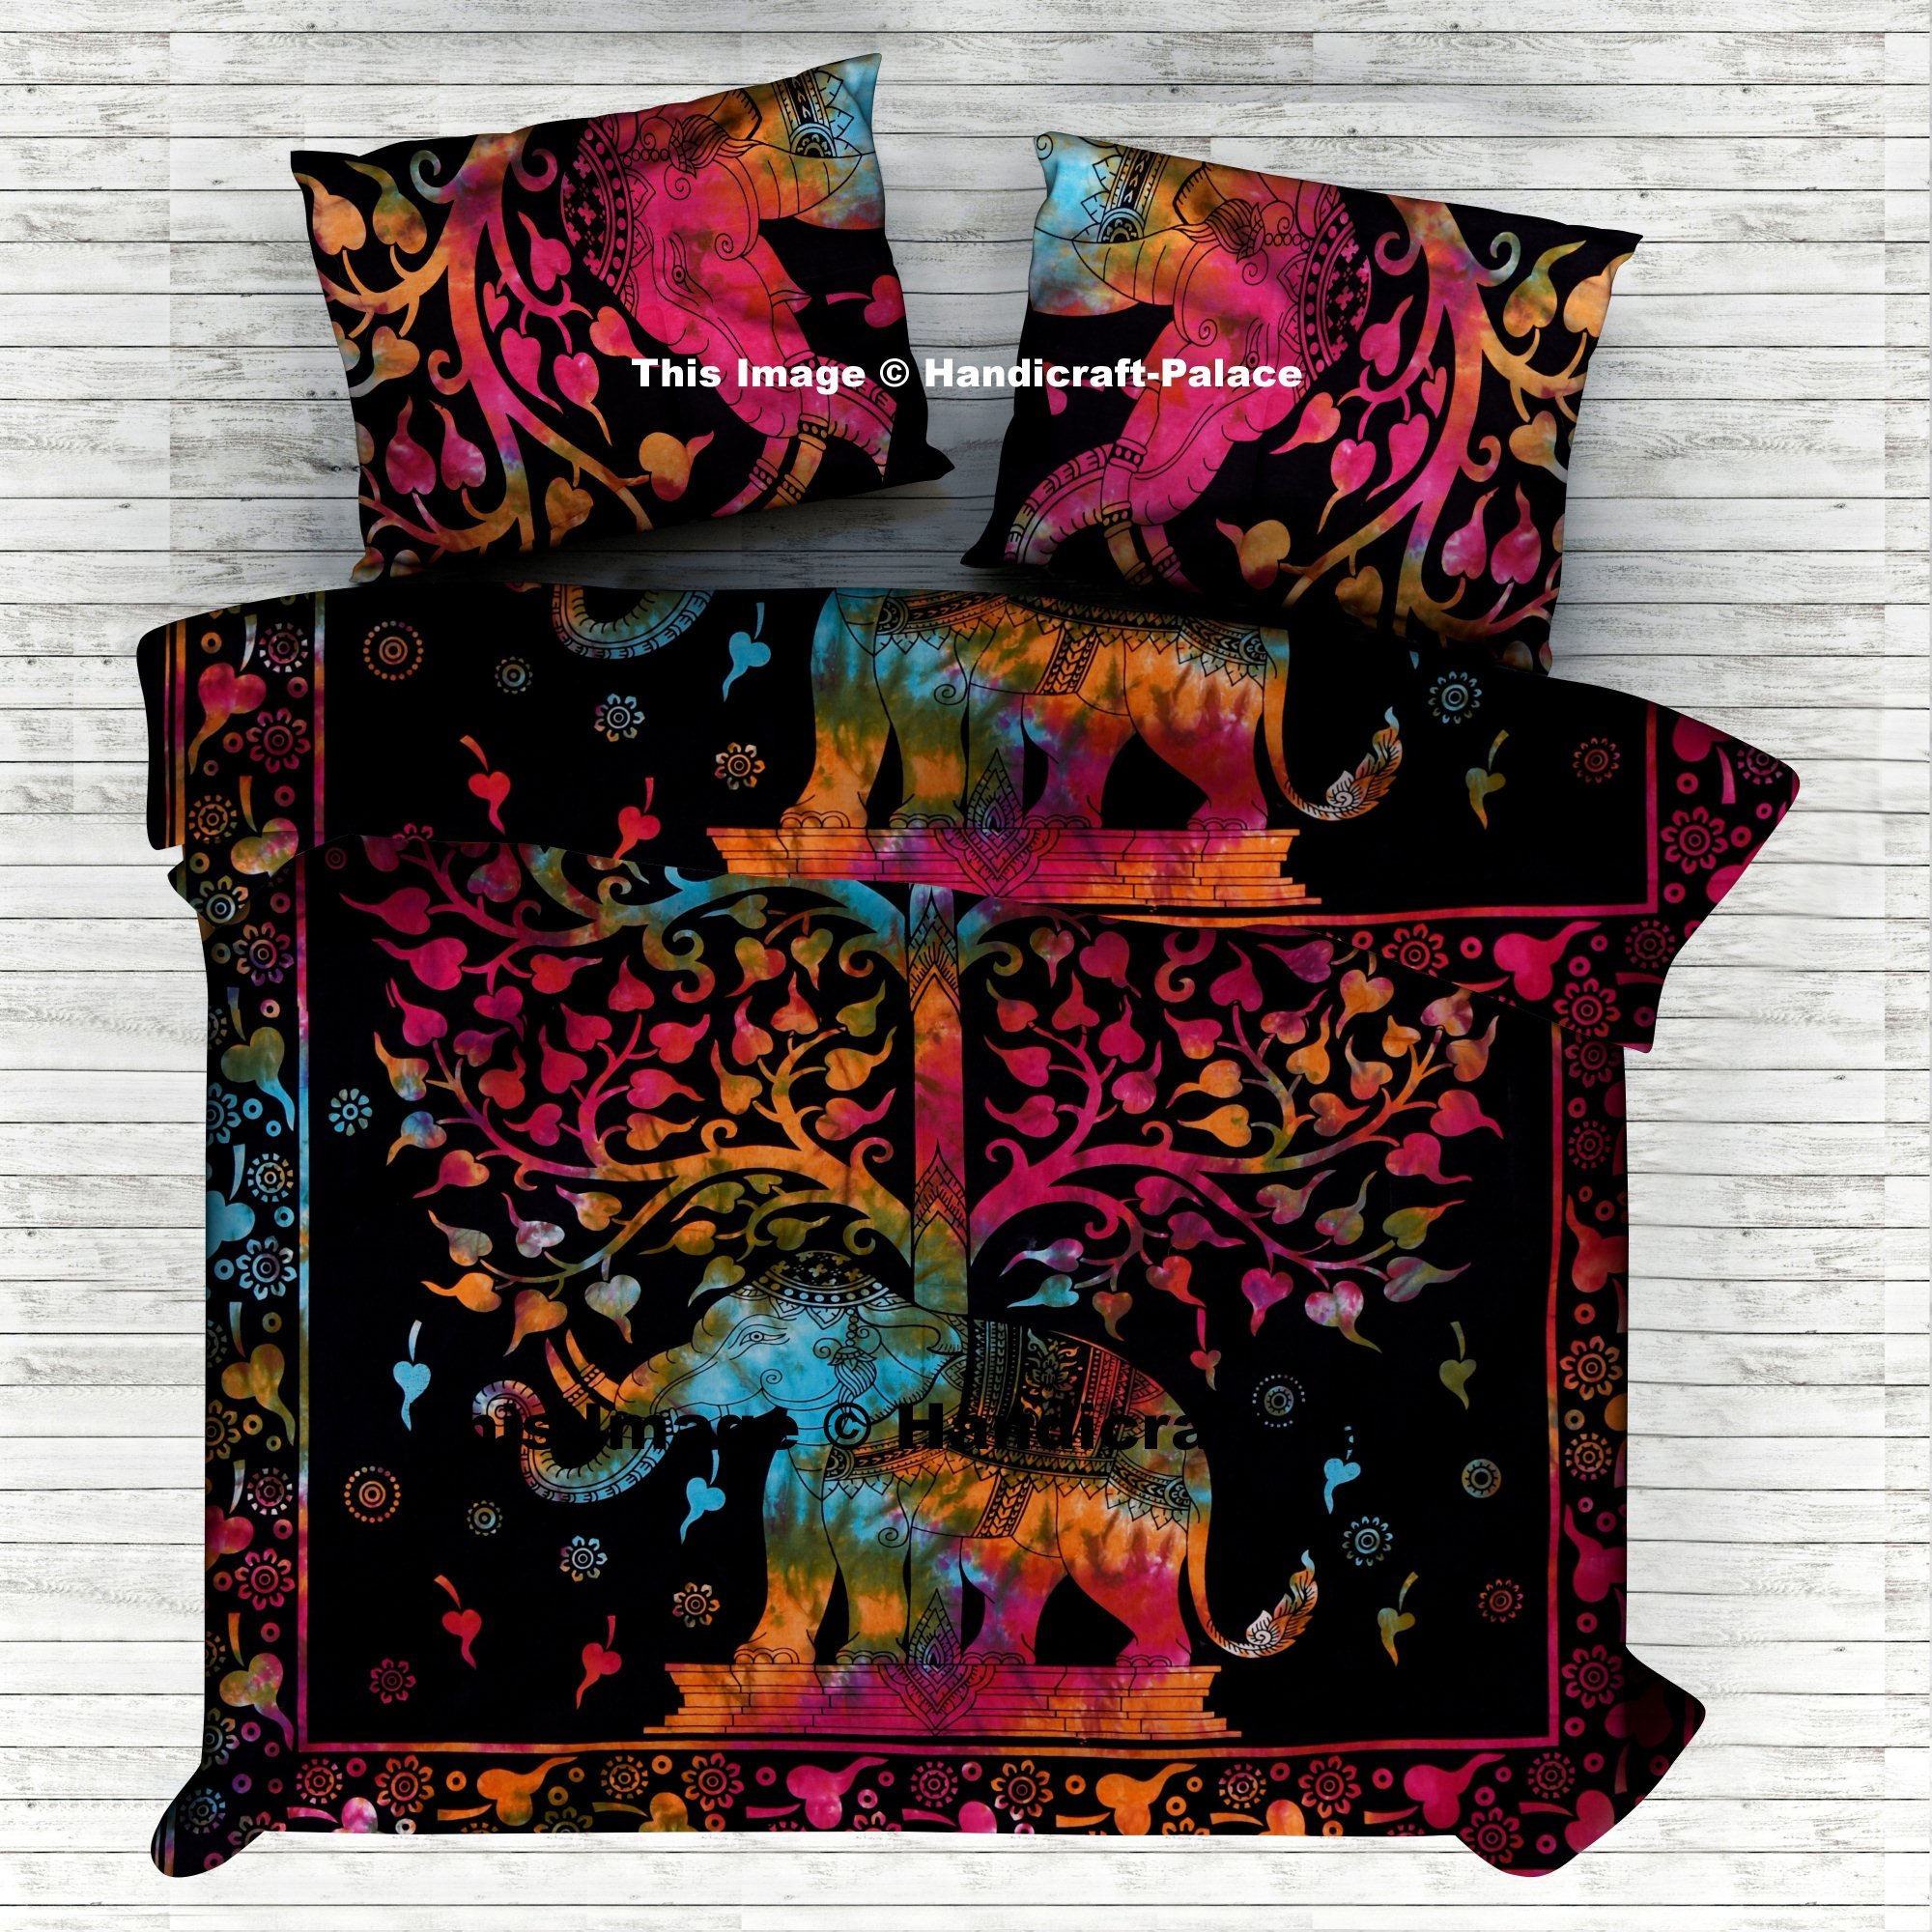 Elephant Tree Of Life Indian Cotton Queen Tie Dye Duvet Cover Pillow Case Doona Bohemina Quilt Blanket Cover By ''Handicraftspalace'' Indian Art